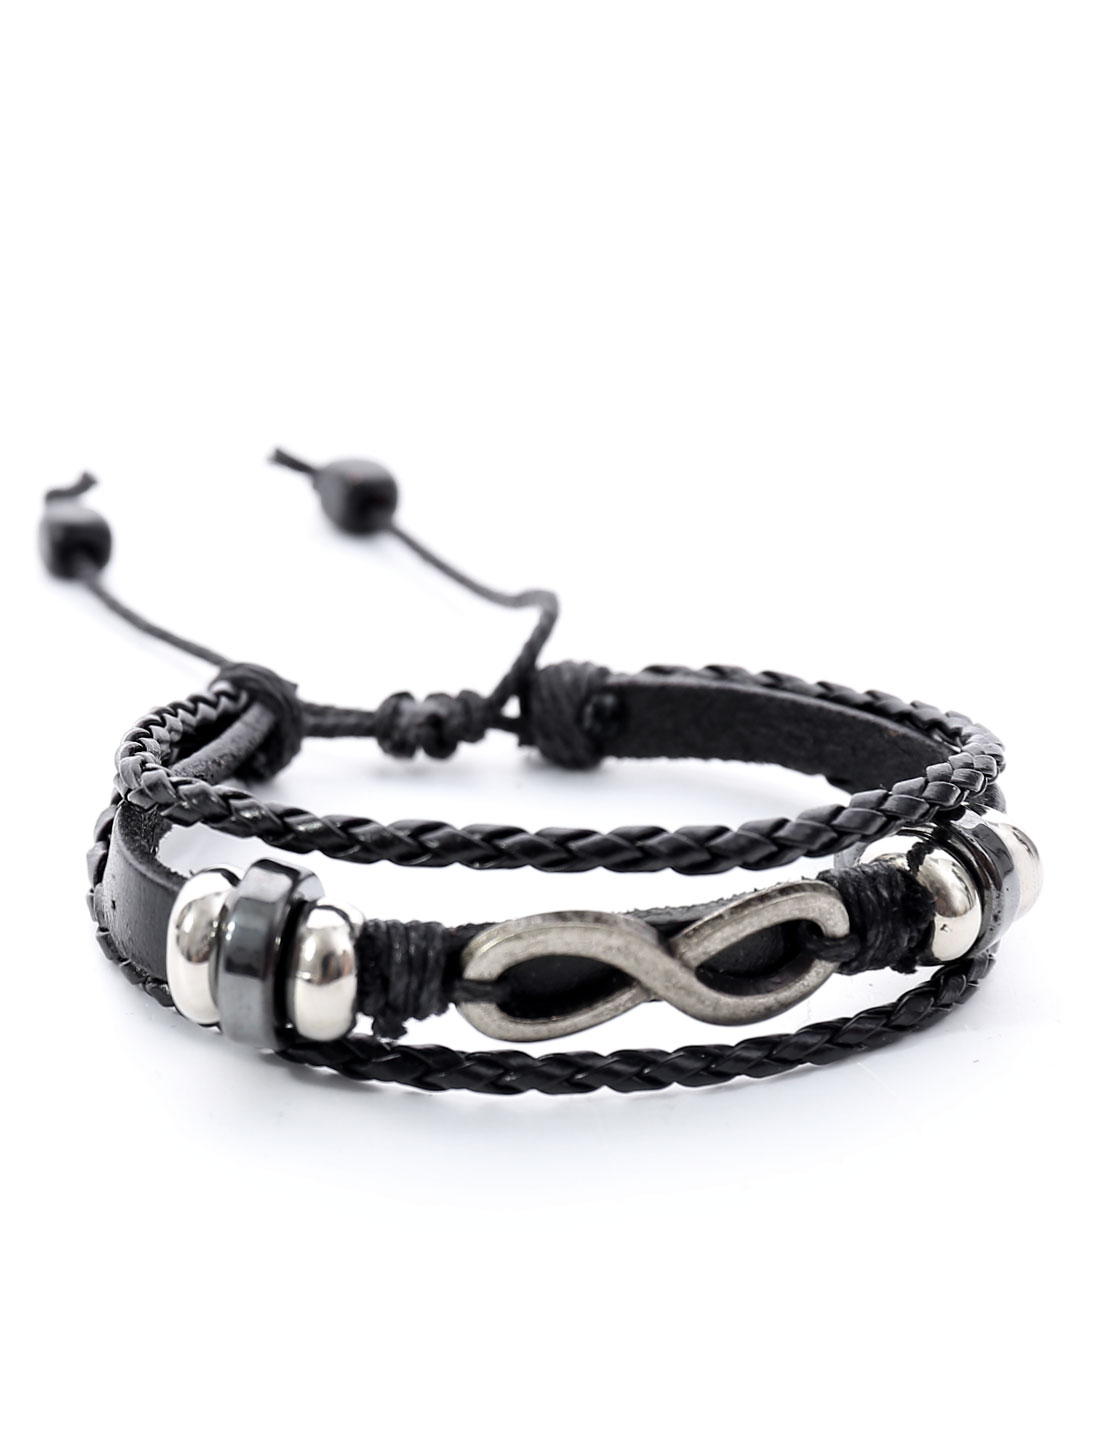 Punk Infinity Leather Charm Wrap Wristband Bracelet Bangle Cuff